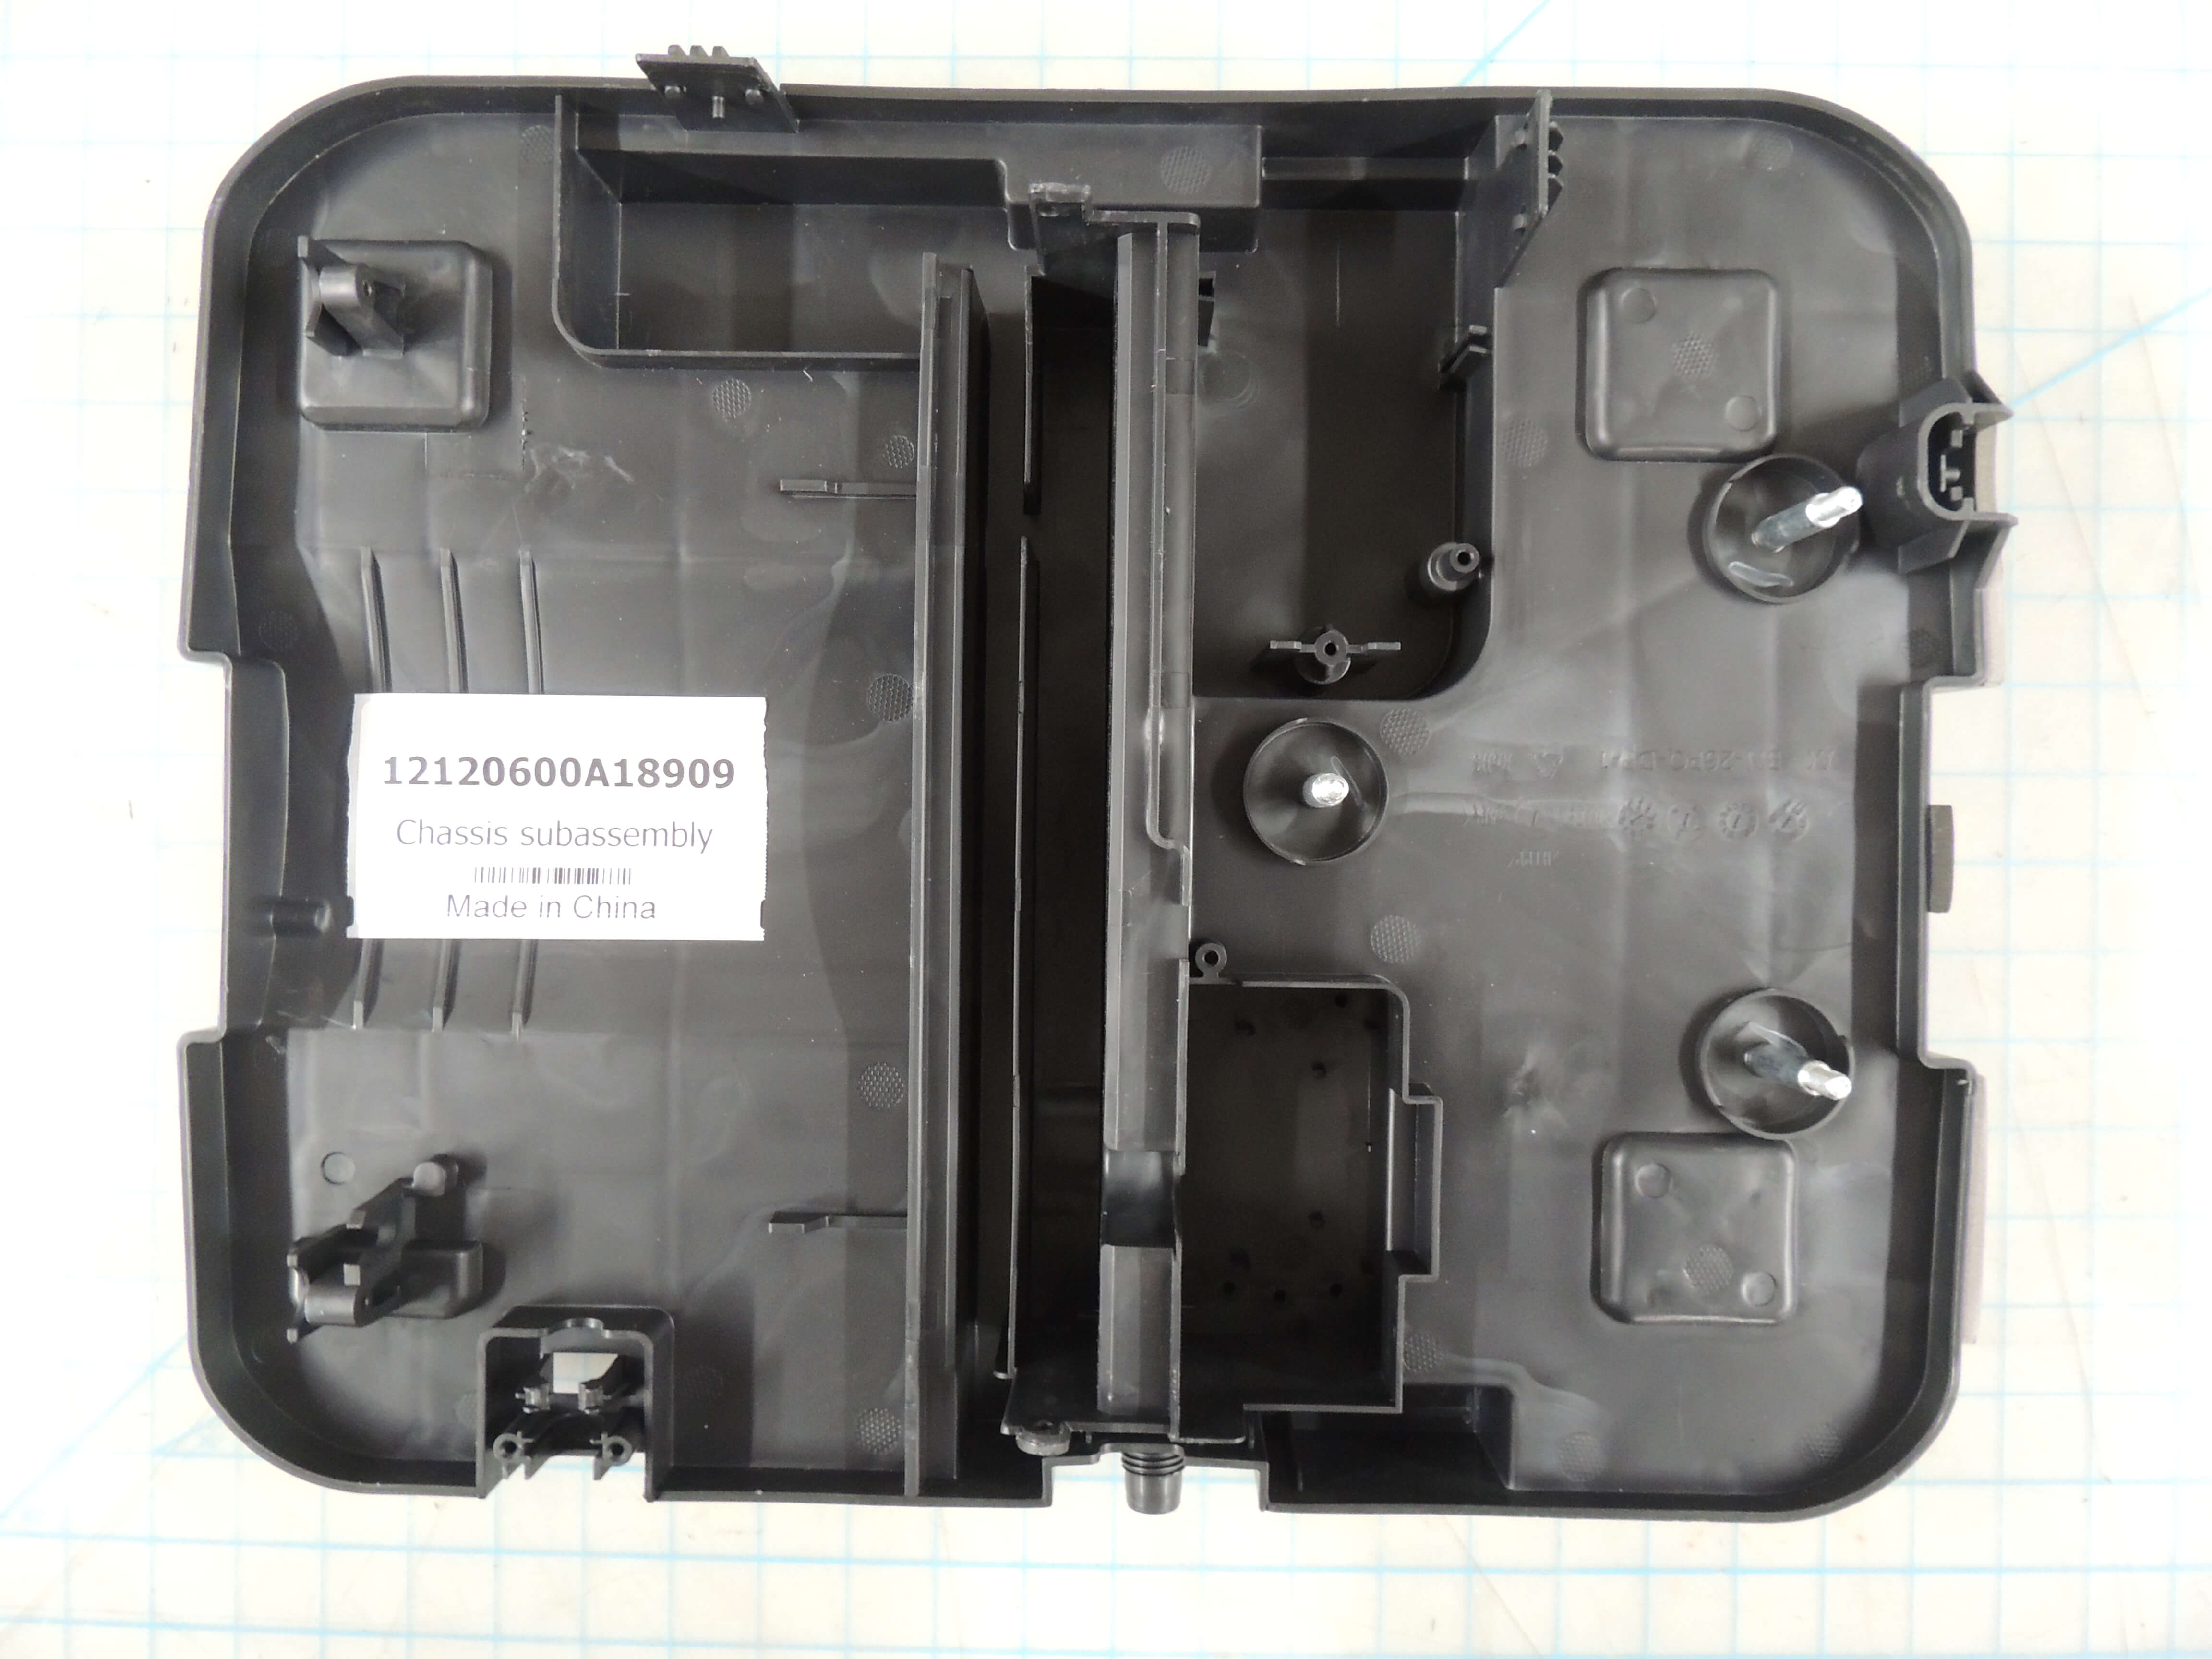 Chassis subassembly